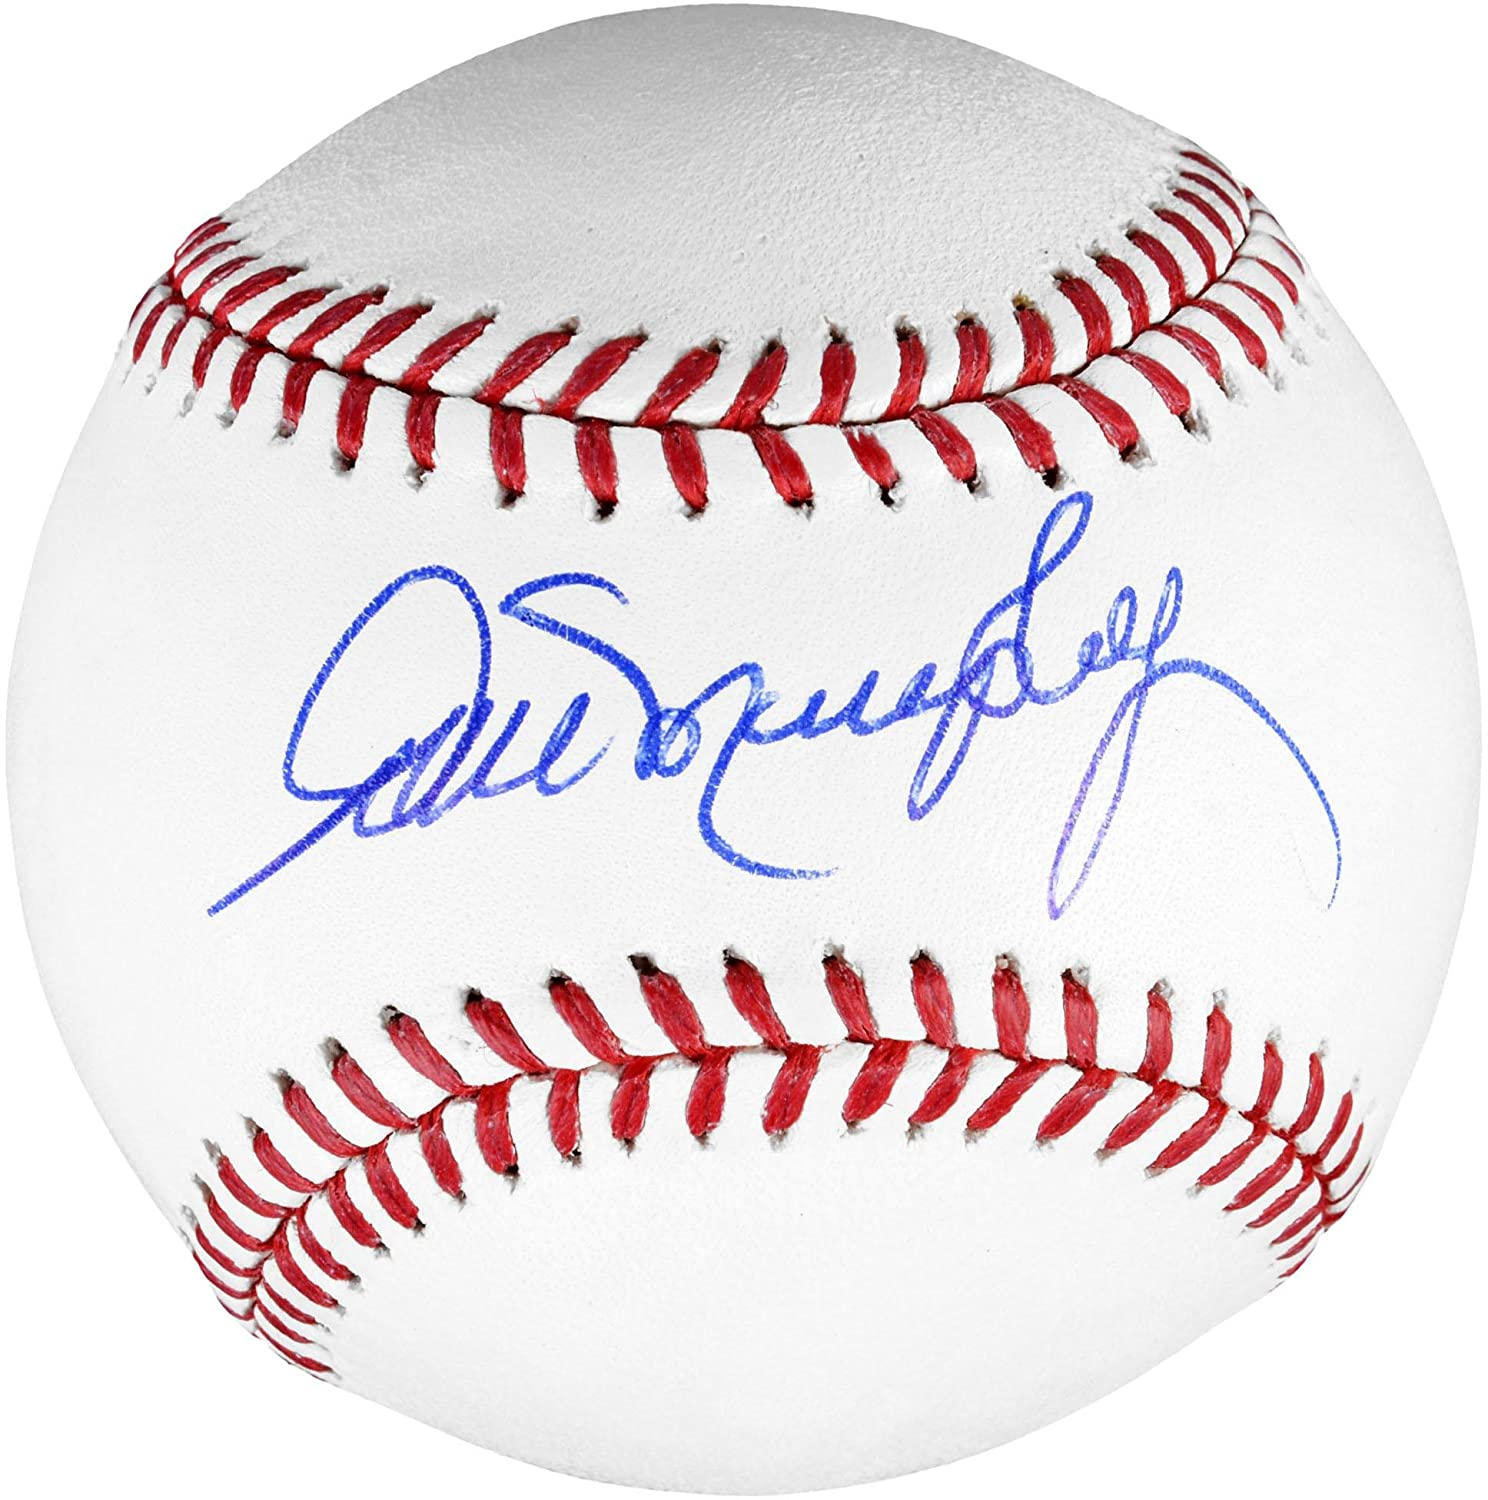 Dale Murphy Atlanta Braves Autographed Baseball - Fanatics Authentic Certified - Autographed Baseballs